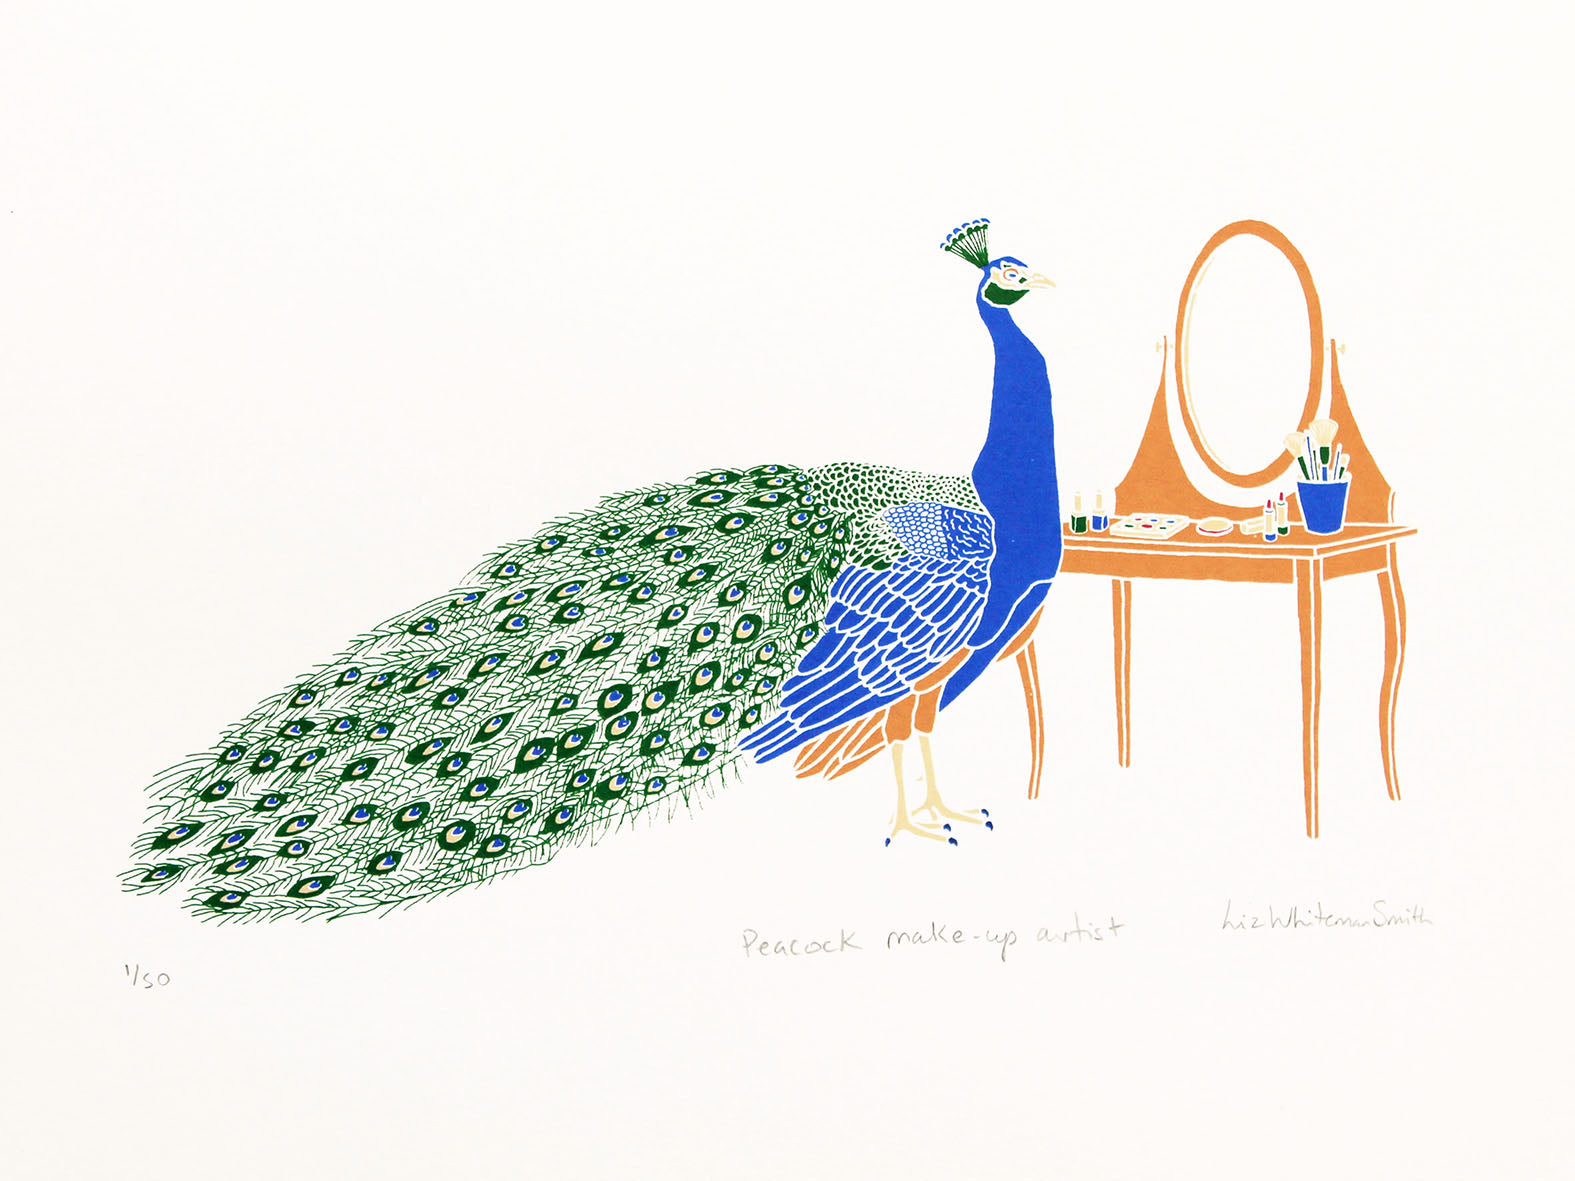 Blue peacock with feathers looking into a mirror